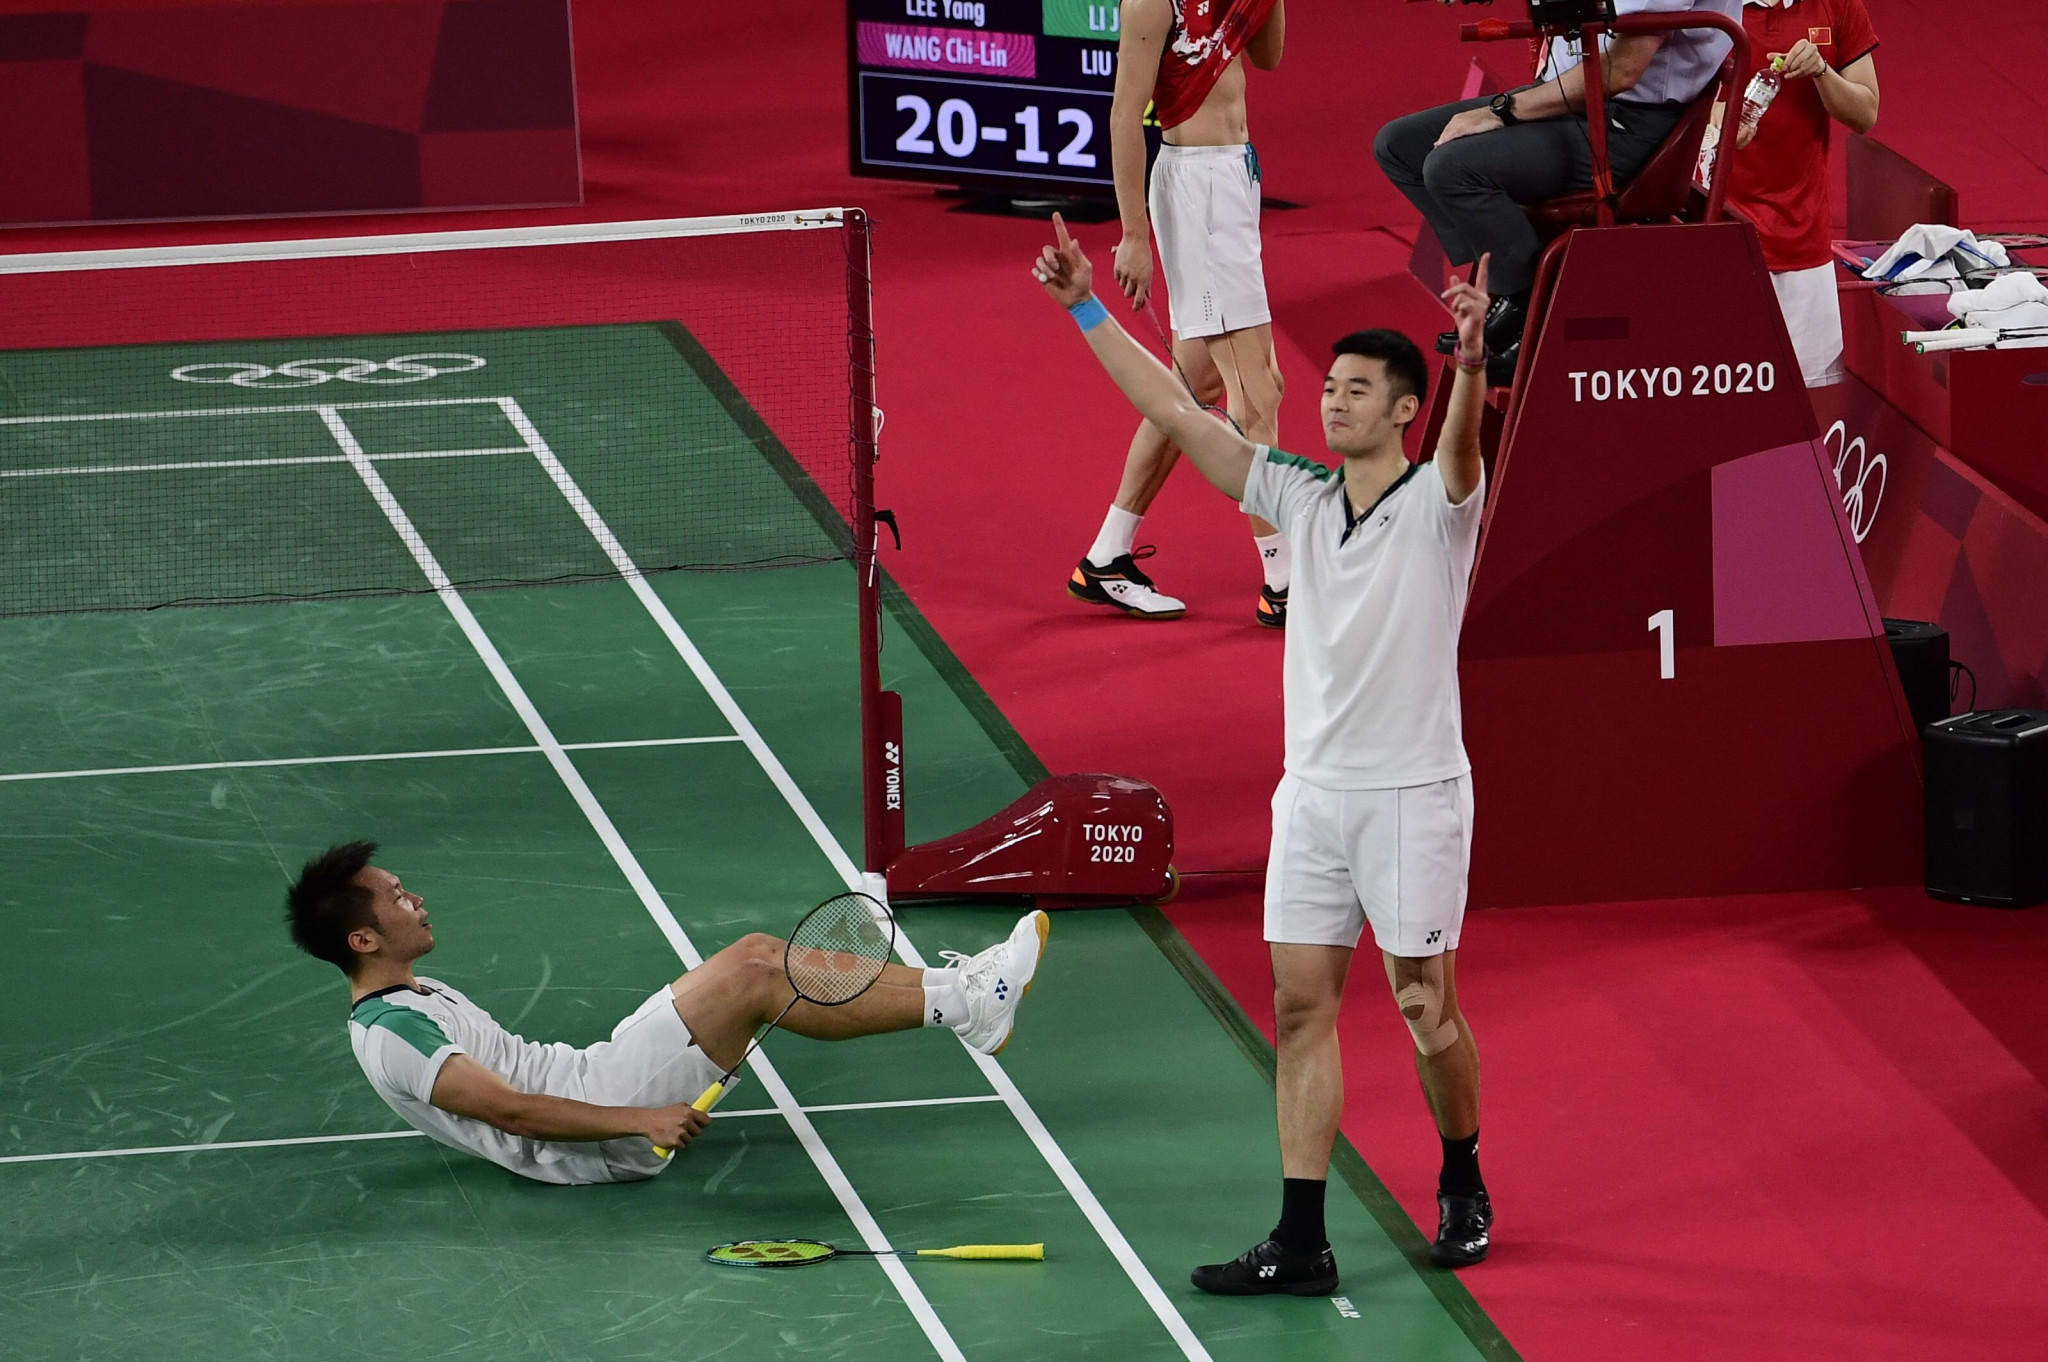 Lee Yang and Wang Chi-lin celebrate after winning the men's doubles final in straight sets ©Getty Images